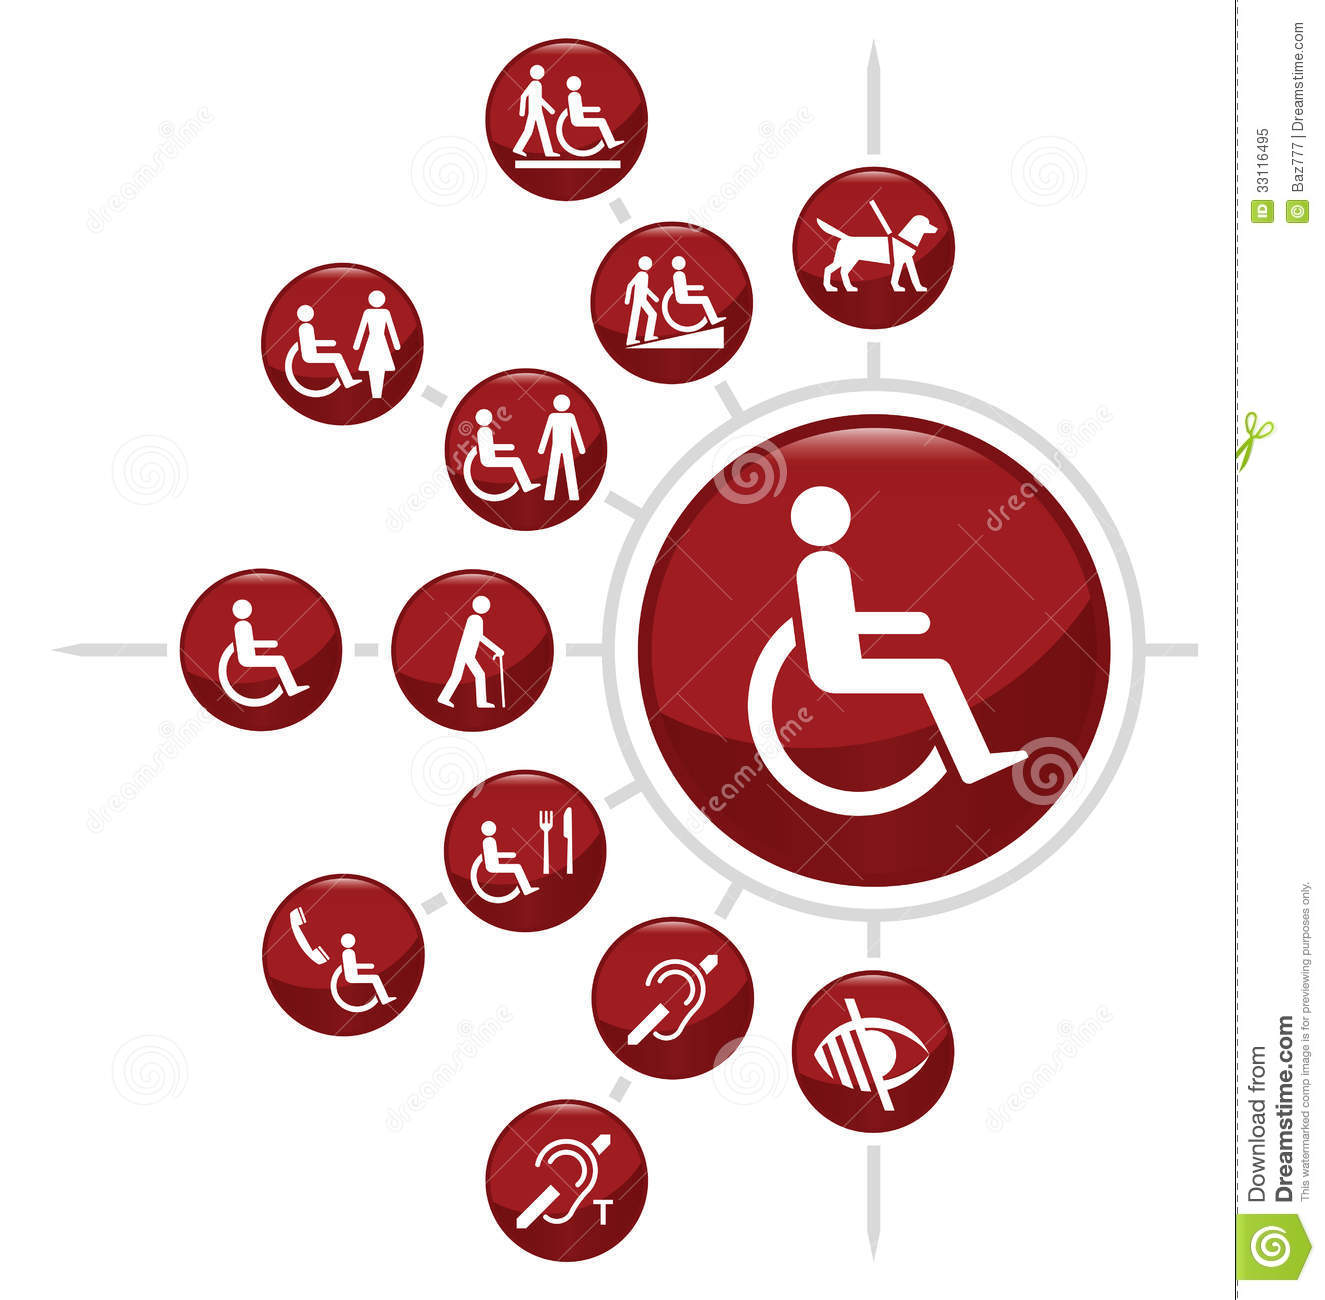 Red Disability related icon set isolated on white background.